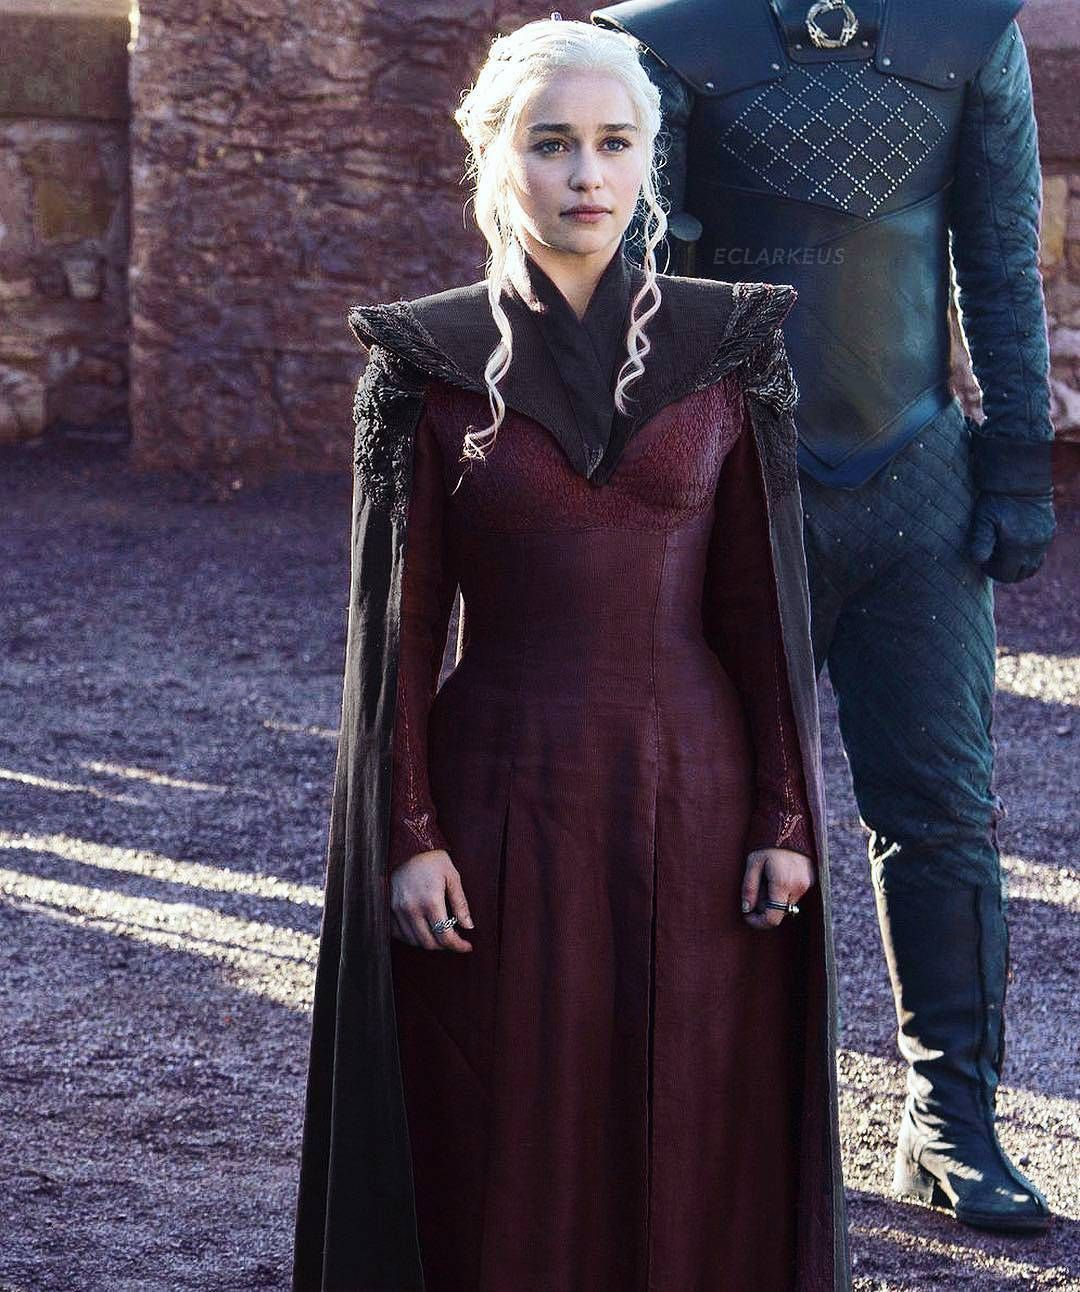 2 297 Vind Ik Leuks 5 Reacties Emilia Clarke Emilia Clarke30 Op Instagram 39 Movienight Timefor Game Of Thrones Costumes Got Costumes Costume Design